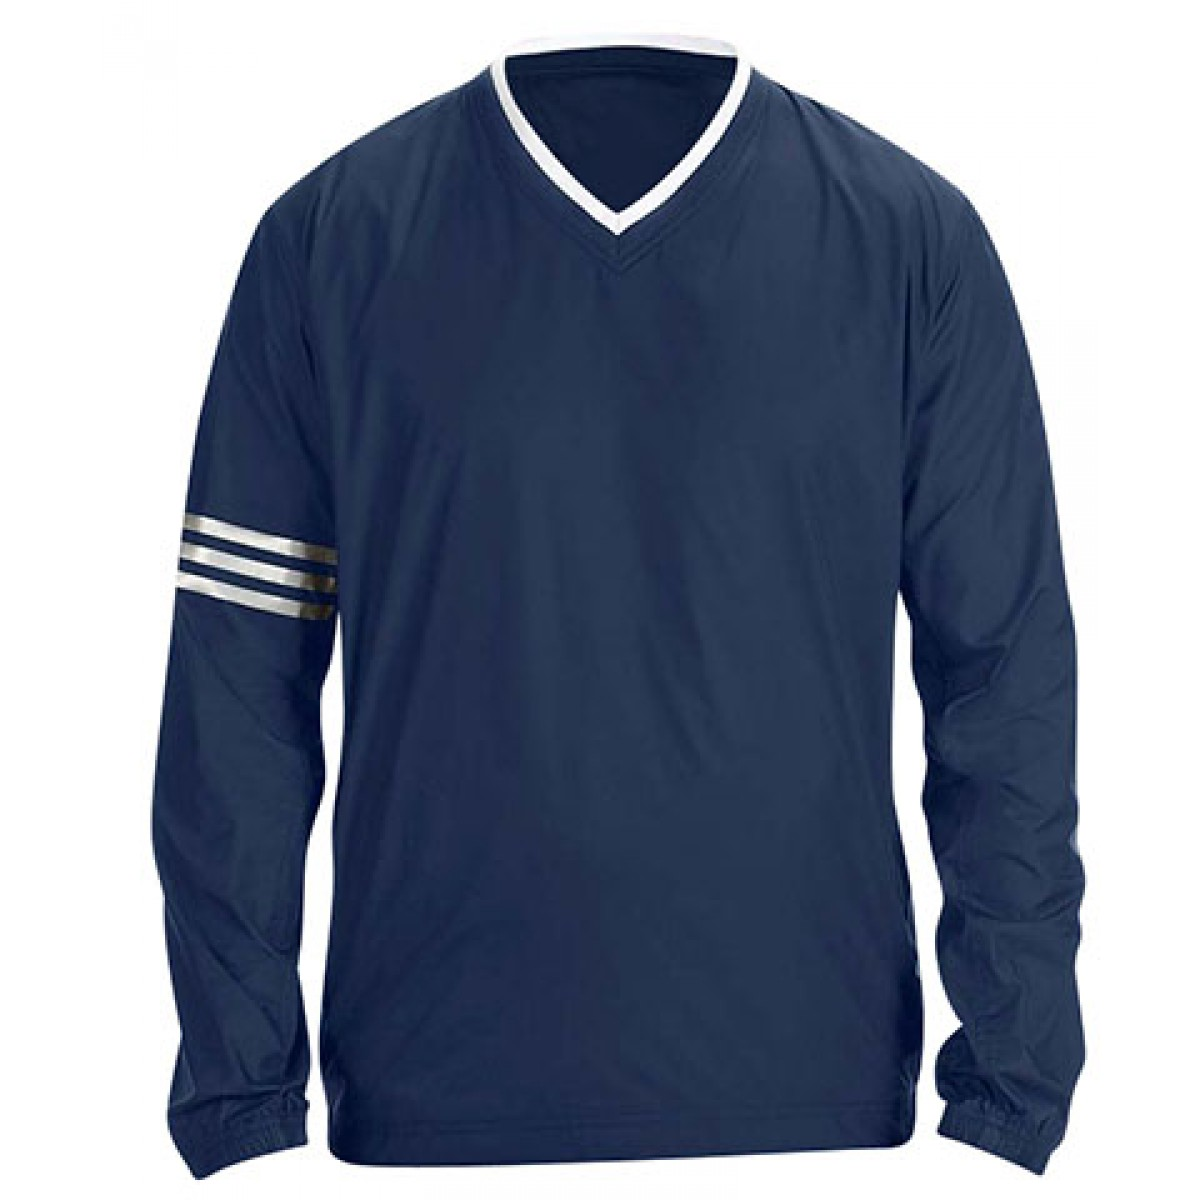 Adidas ClimaLite V-Neck Long Sleeve Wind Shirt-Navy-3XL